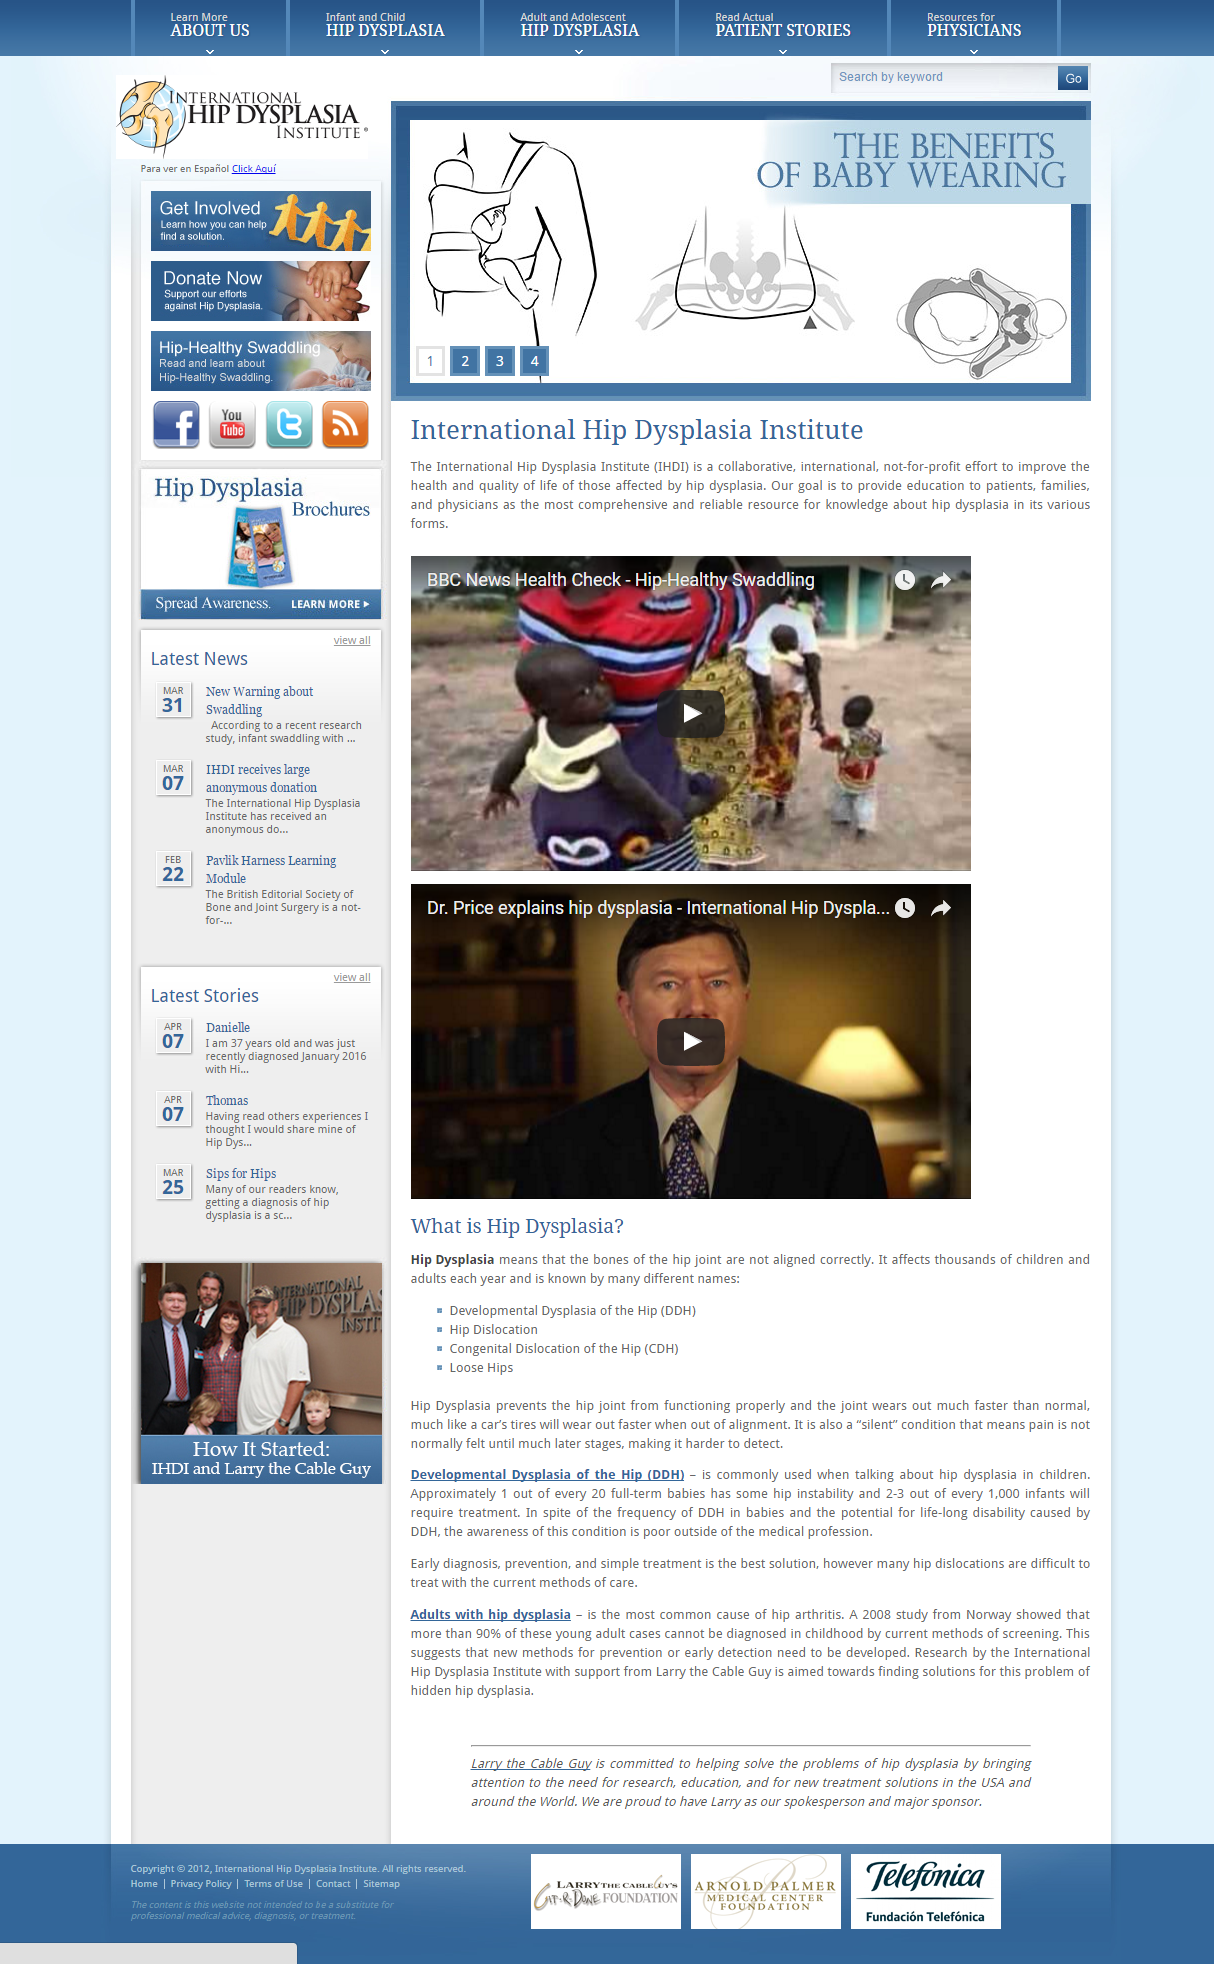 International Hip Dysplasia Institute (IHDI)